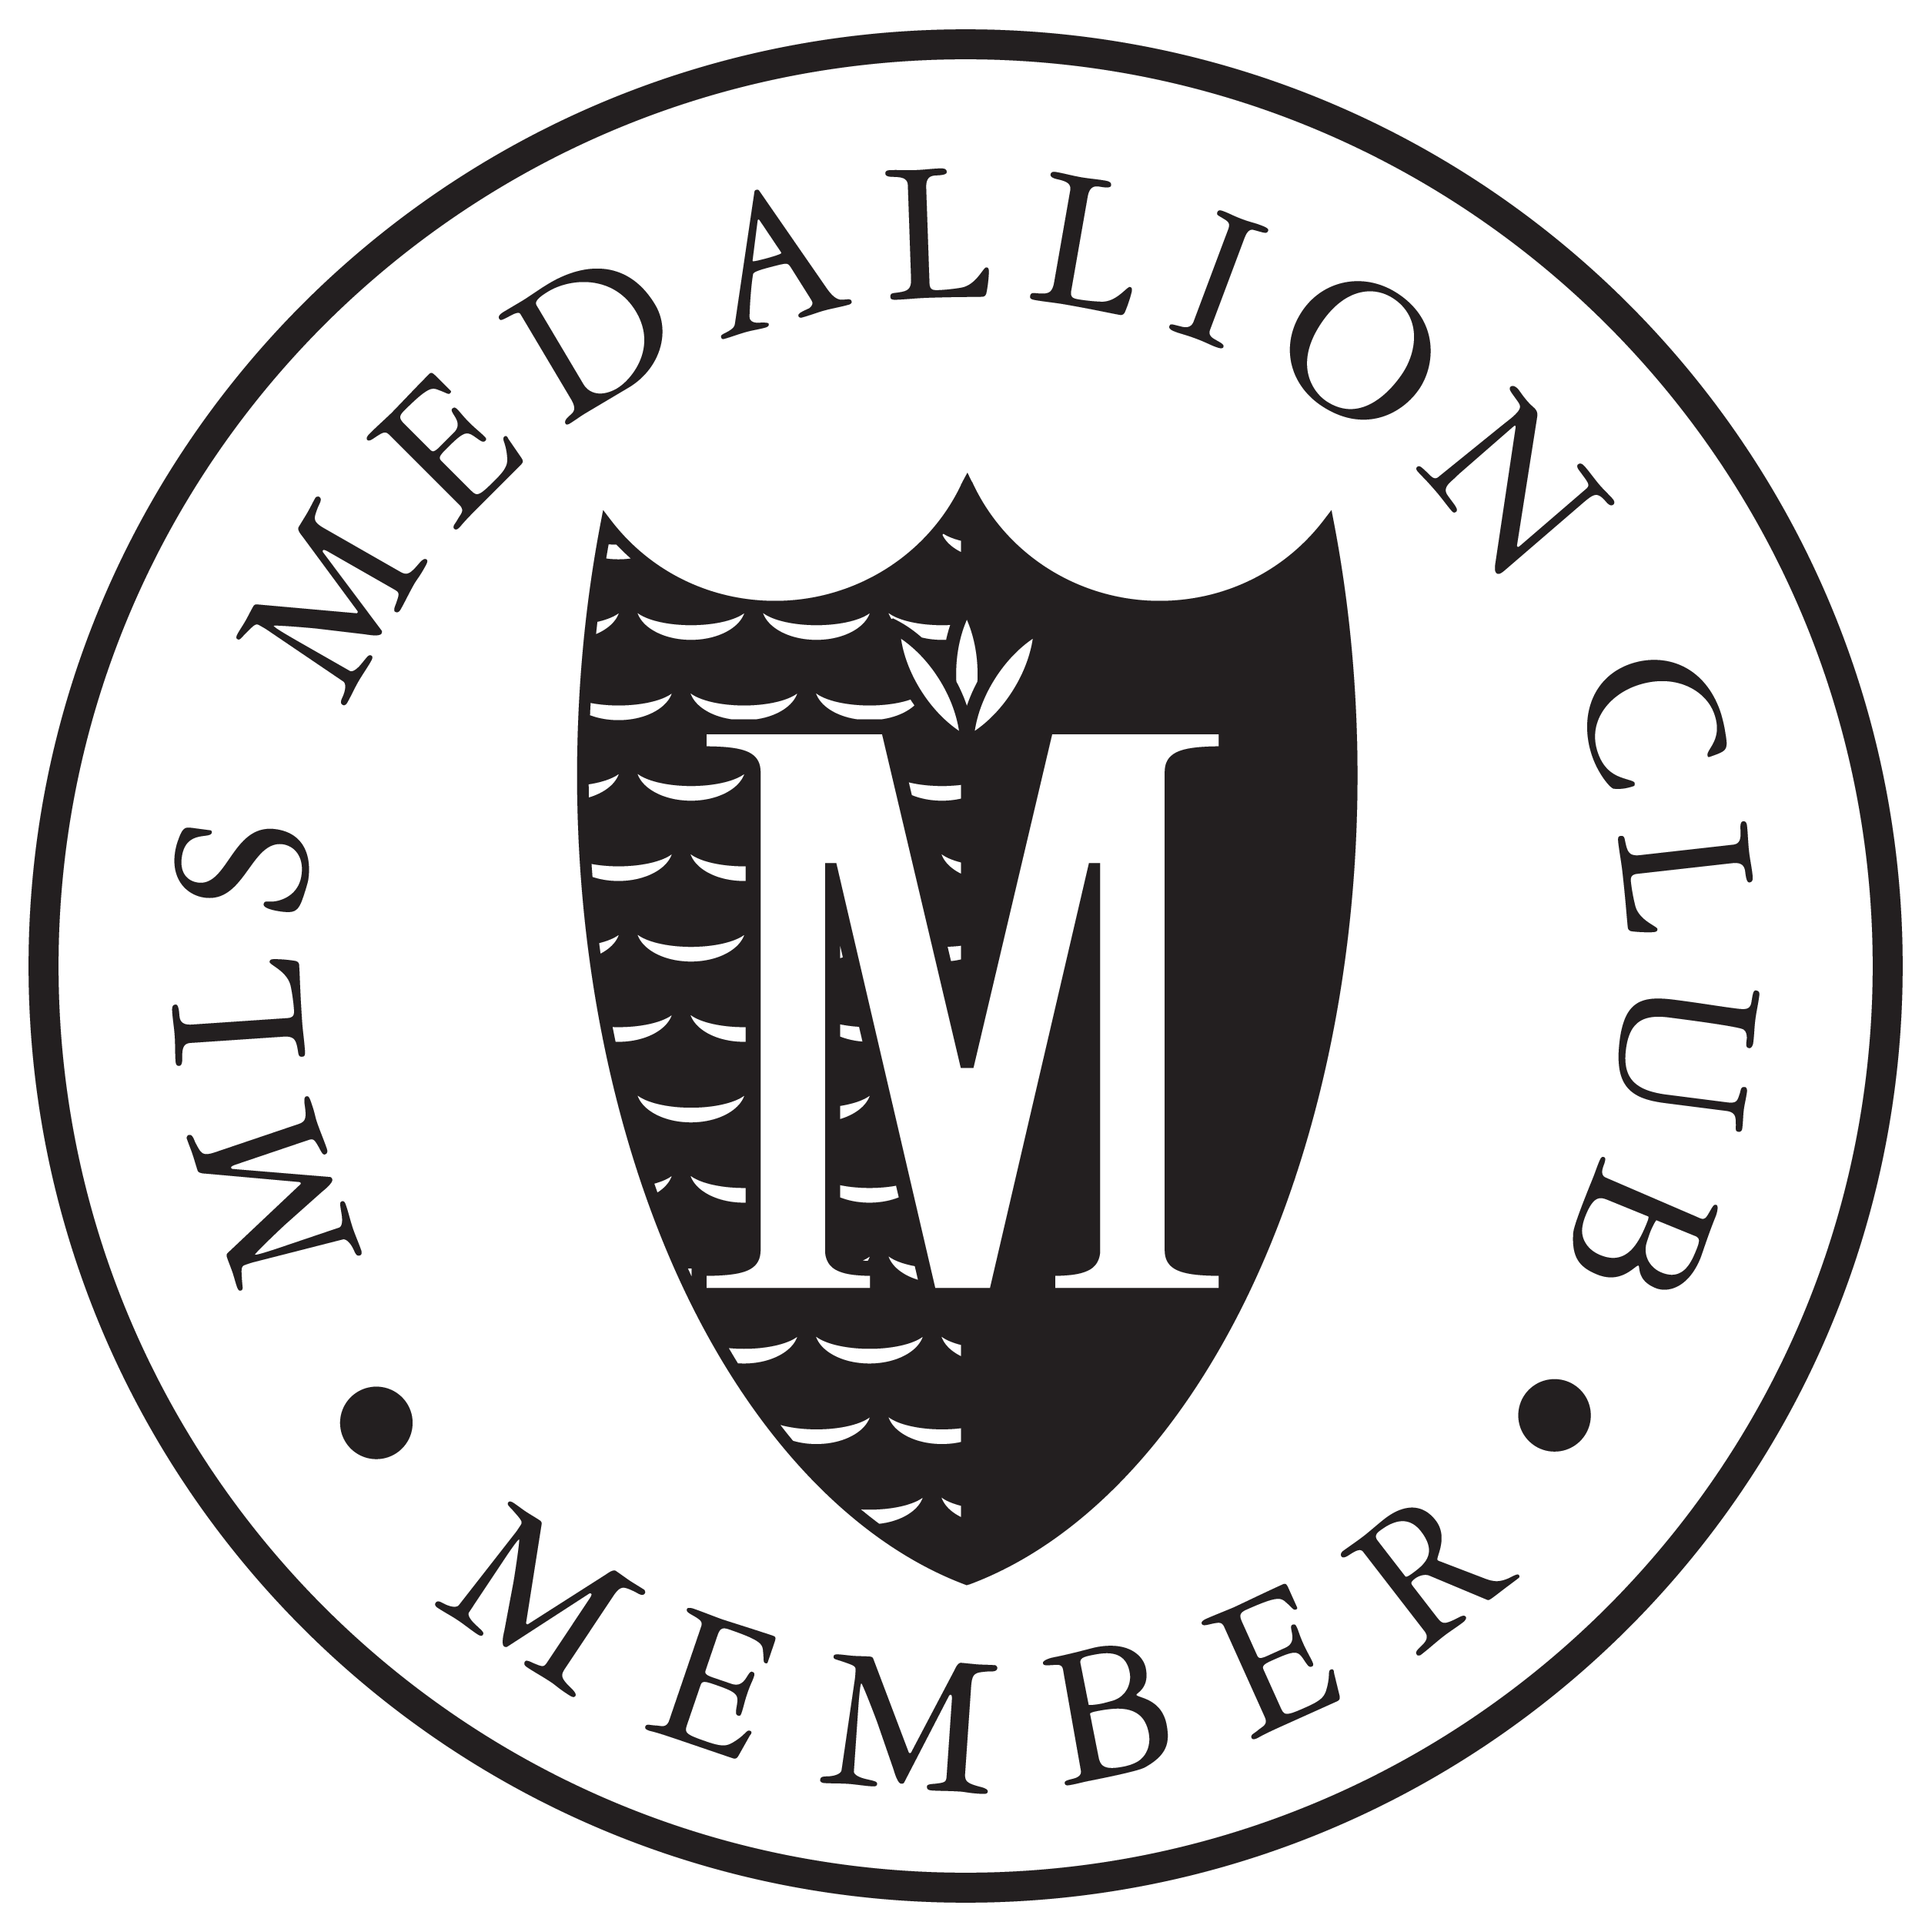 President Club Award - Top 1% in 2019 & 2020 of All realtors based on MLS Sales at the Real Estate Board Greater Vancouver